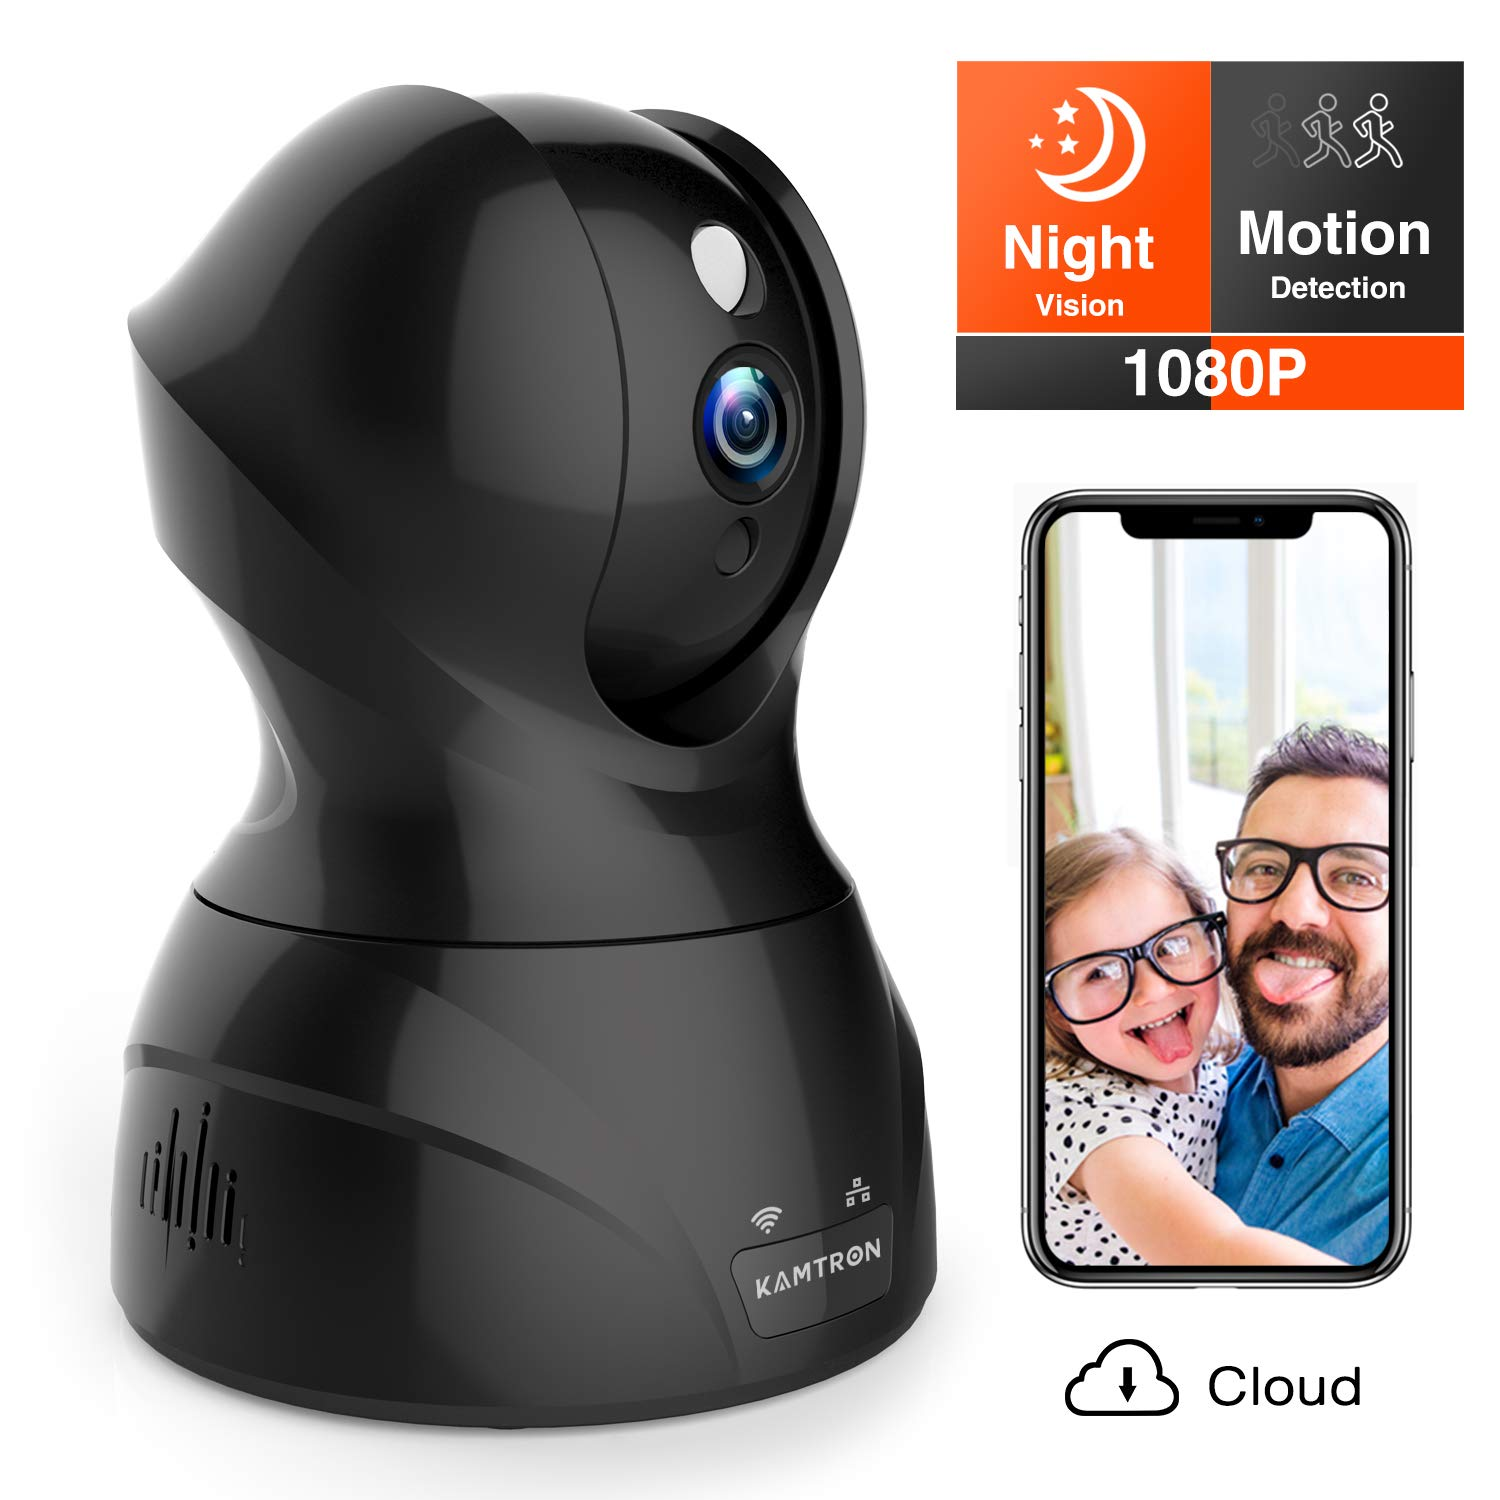 Security Camera 1080P WiFi Dog Pet Camera - KAMTRON Wireless Indoor Pan/Tilt/Zoom Home Camera Baby Monitor IP Camera with Motion Detection Two-Way Audio, Night Vision - Cloud Storage by KAMTRON